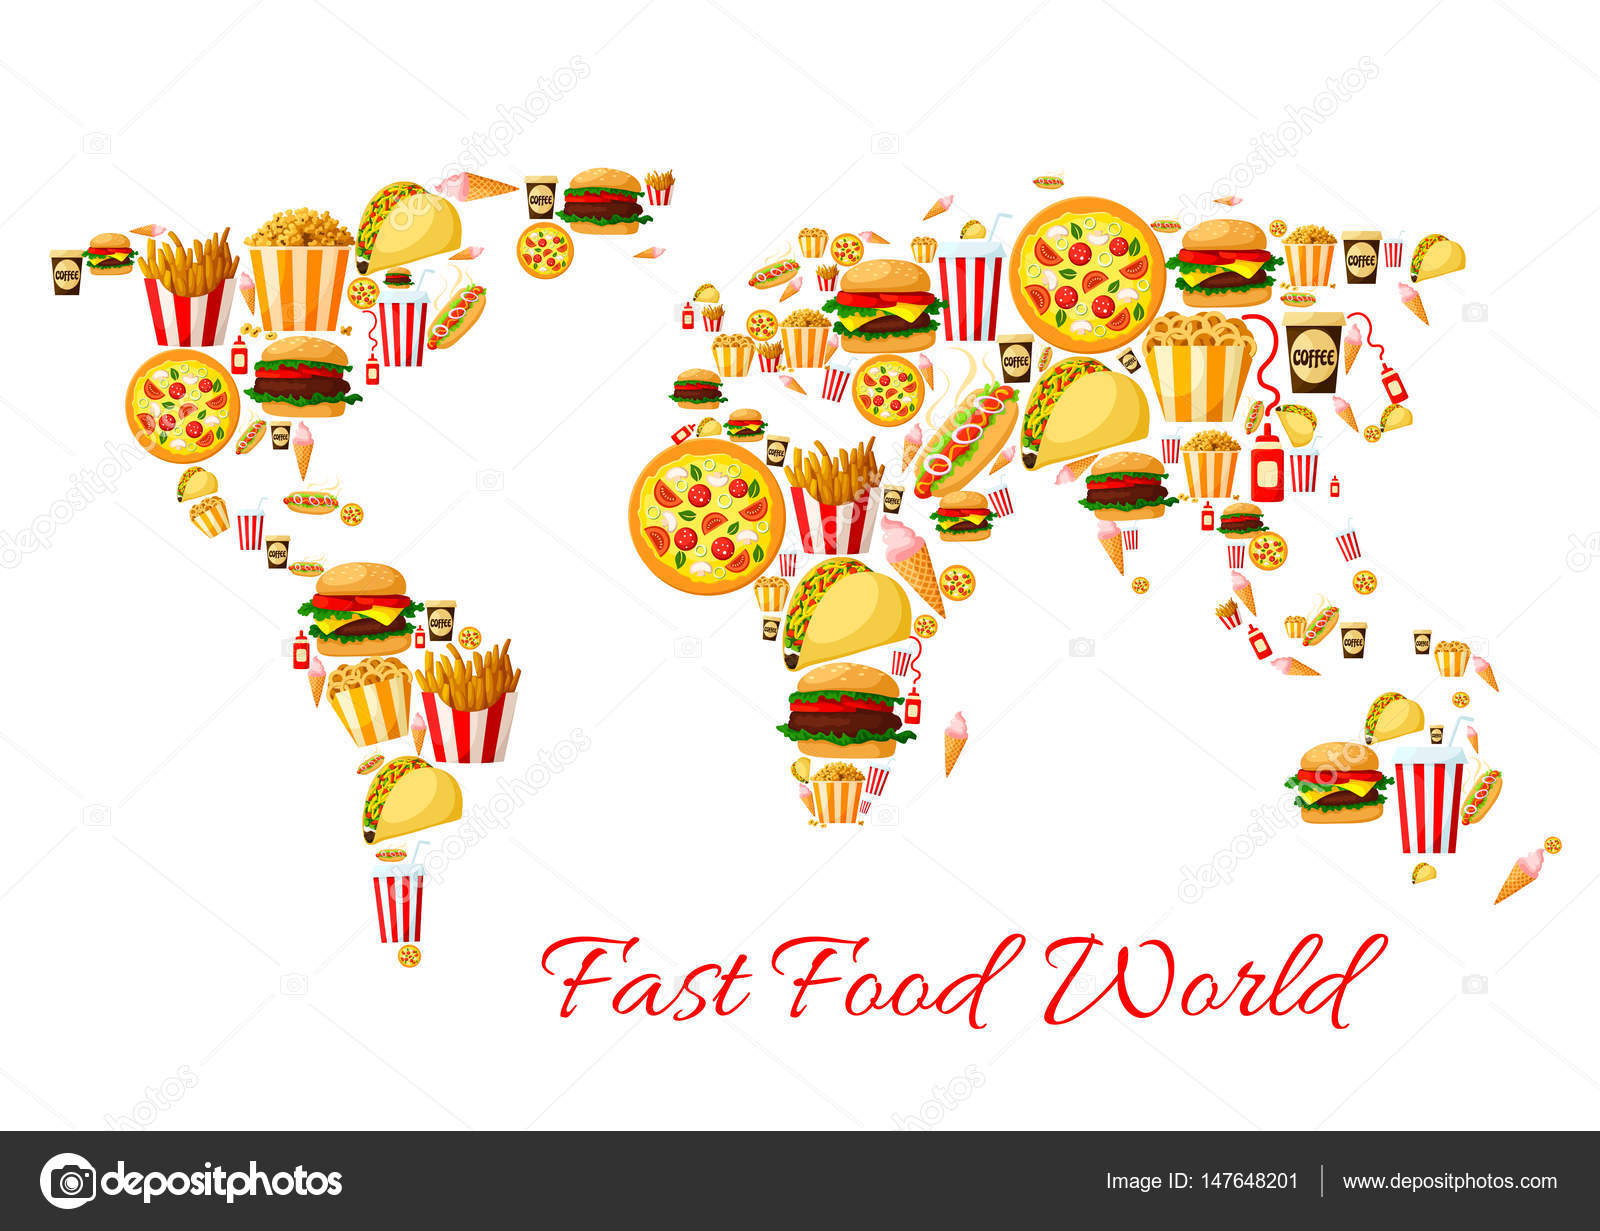 Fast food world map cartoon poster design stock vector fast food world map cartoon poster design stock vector gumiabroncs Images